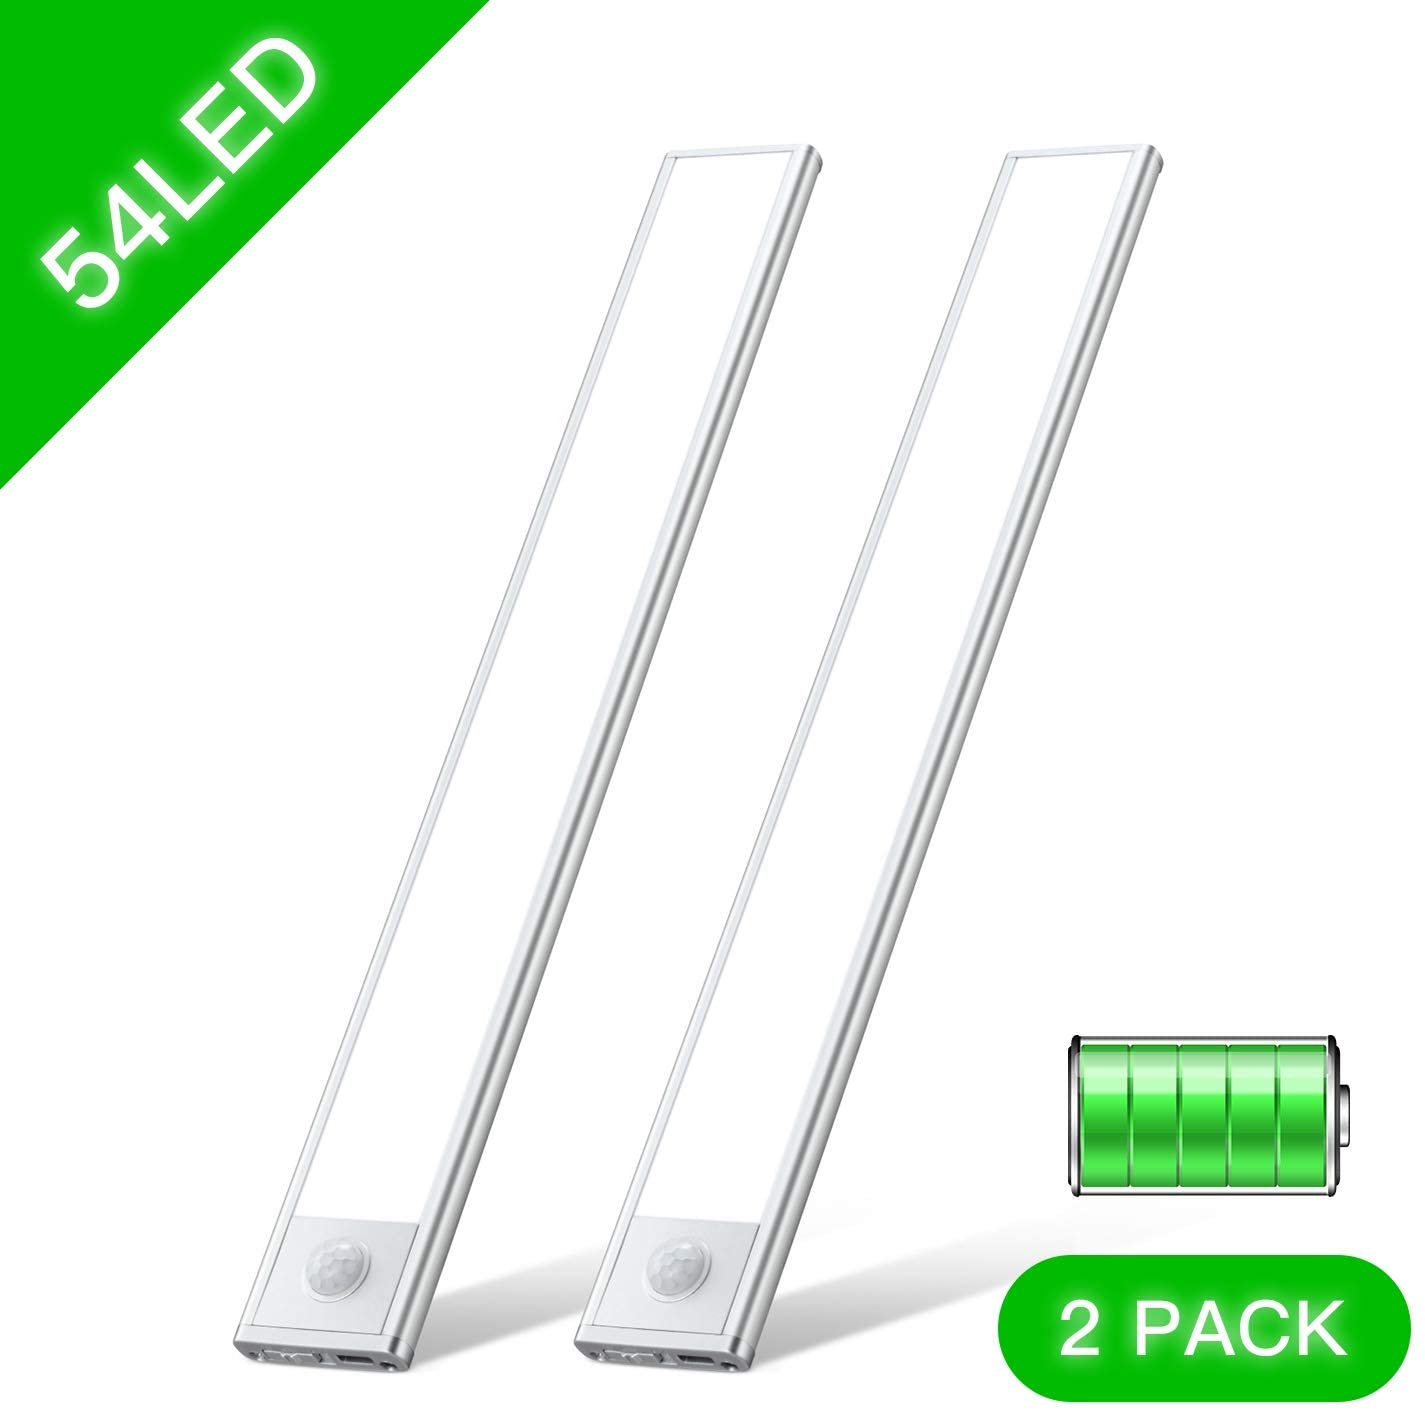 Otdair 54 LED Motion Sensor Closet Light Wireless USB Rechargeable Under Count Cabinet Lighting Cool White Night Light with Battery for Cupboard,Wardrobe,Bedroom or Kitchen,2 Pack